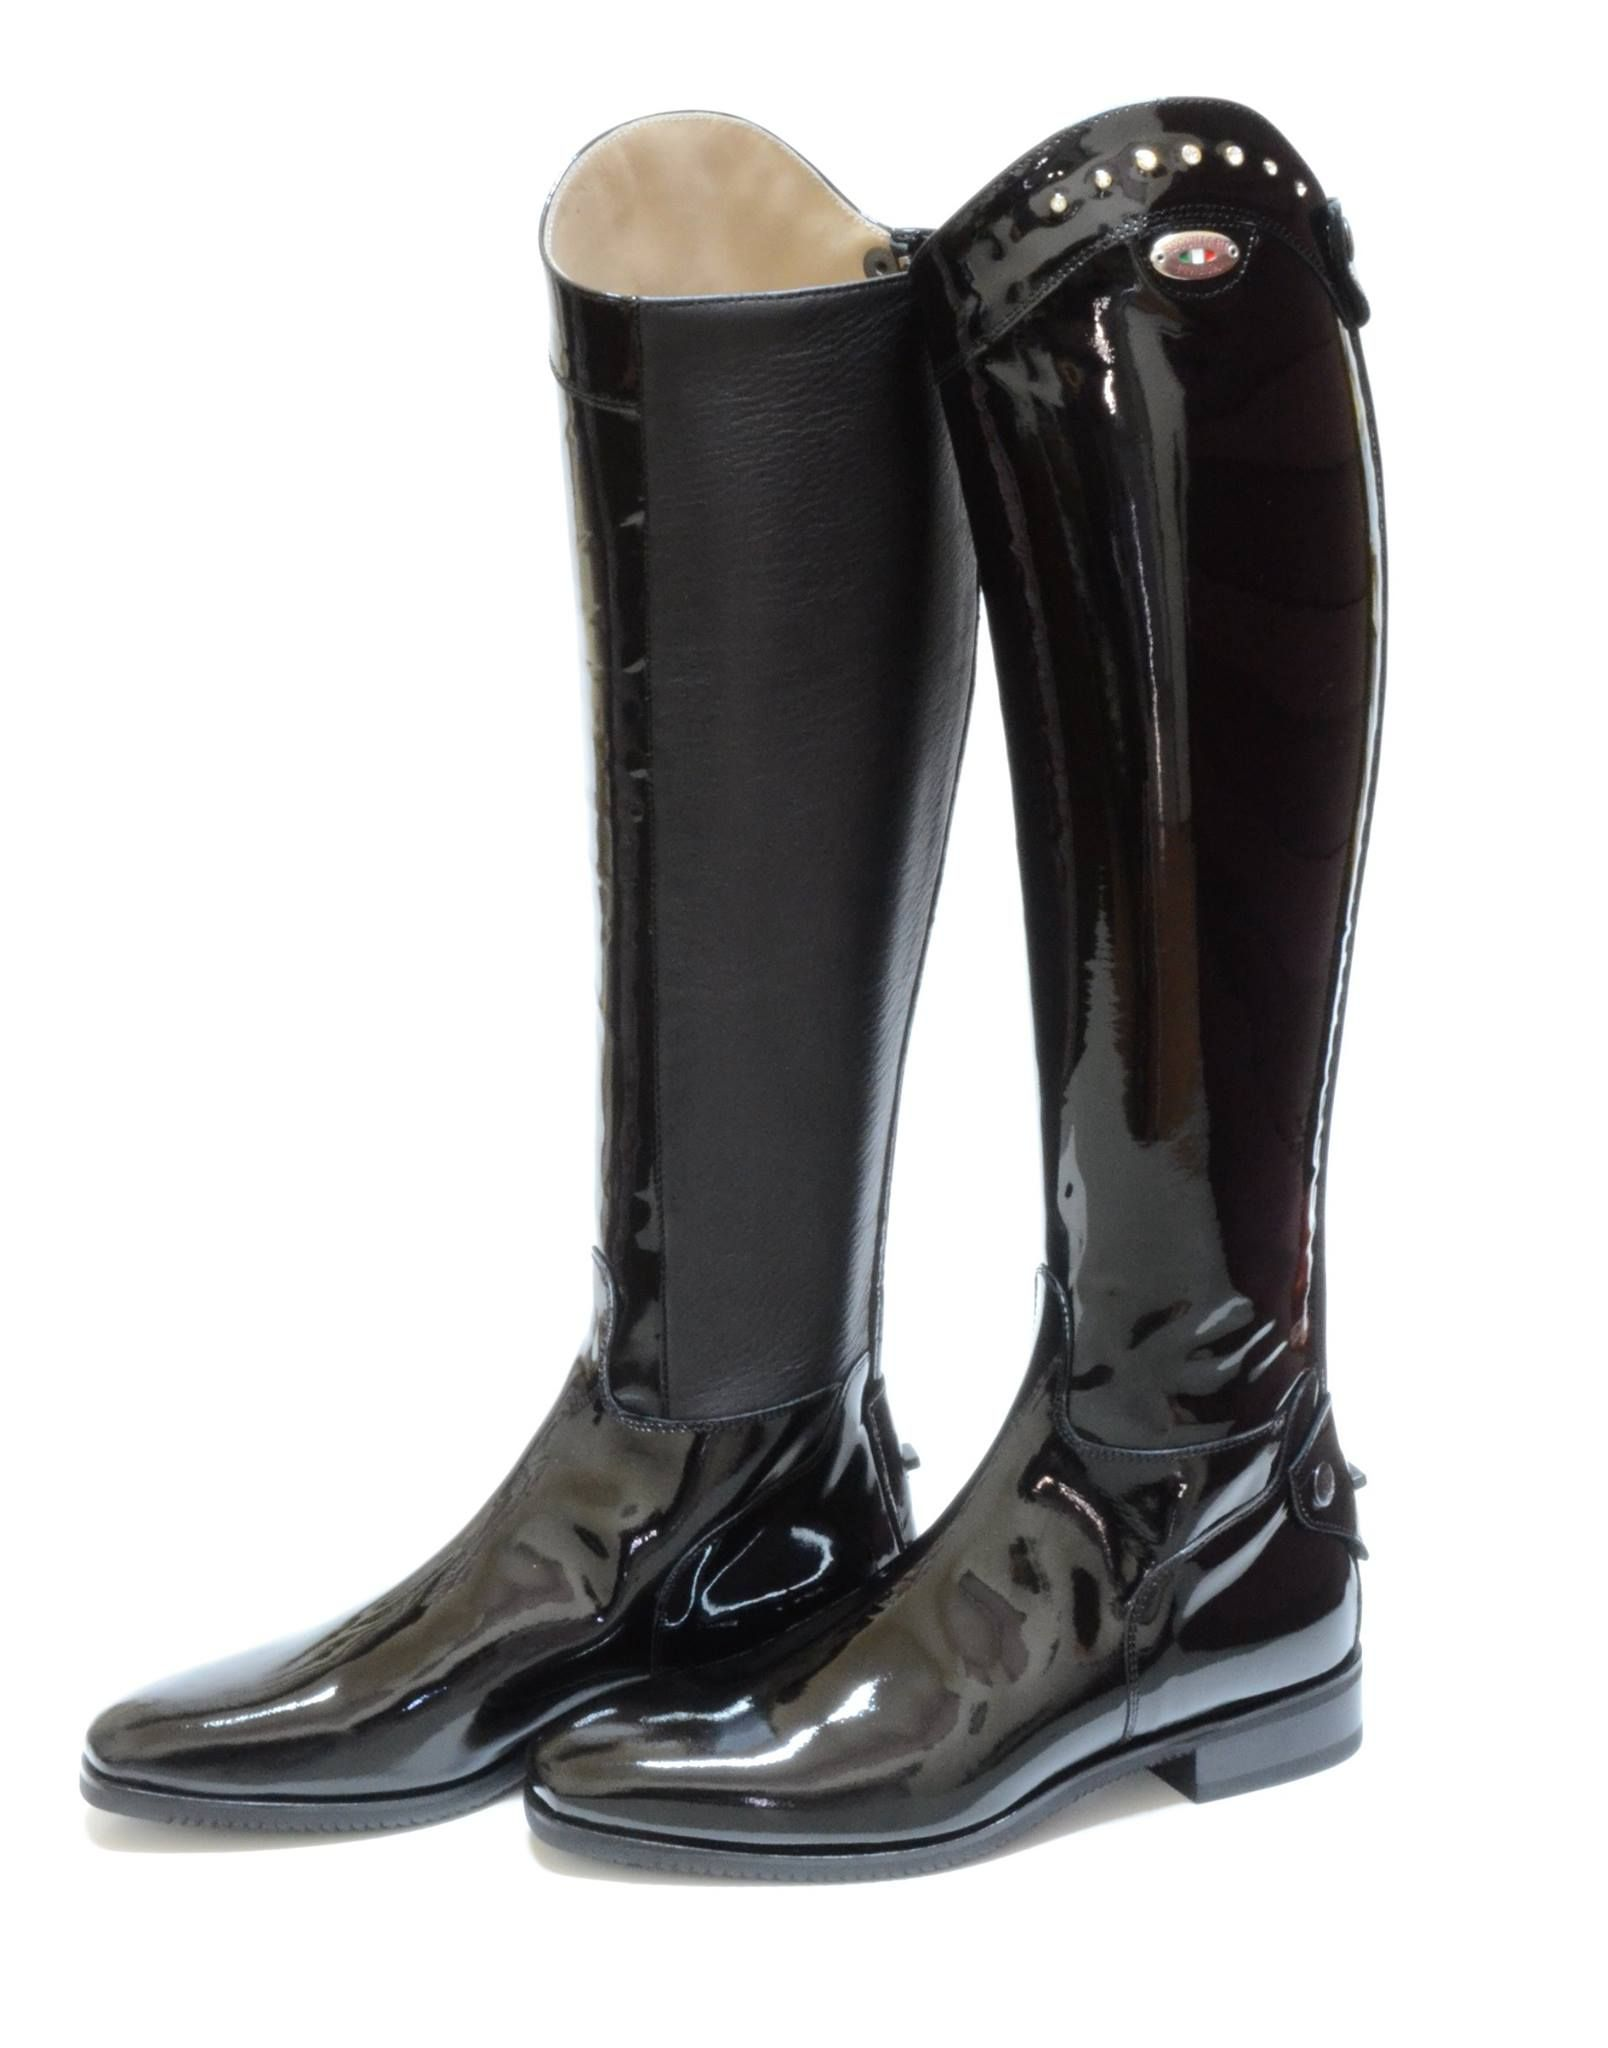 9c9176ee94d Secchiari boots with bullskin leather on the inside! | Silver Spur ...